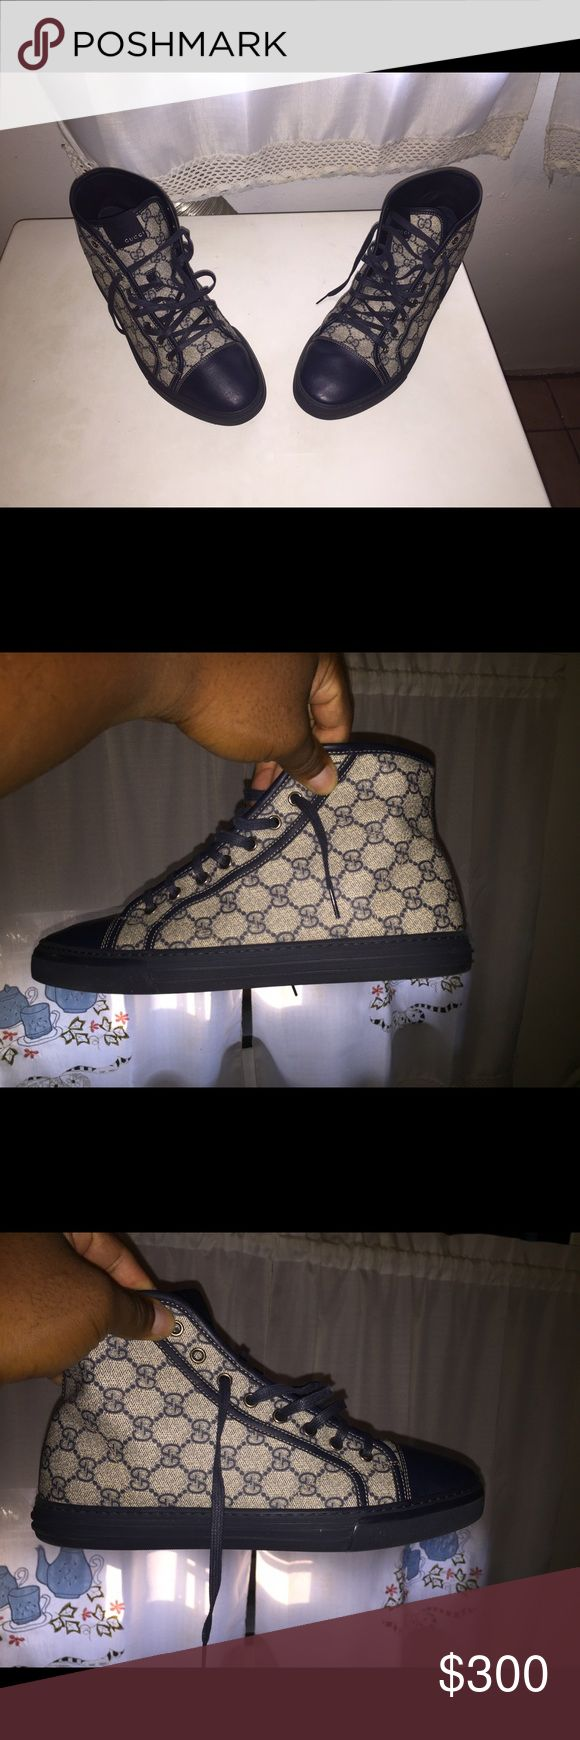 Gucci sneakers I have a pair of Gucci sneaker with the original box and extra laces only worn three time lightly Shoes Sneakers